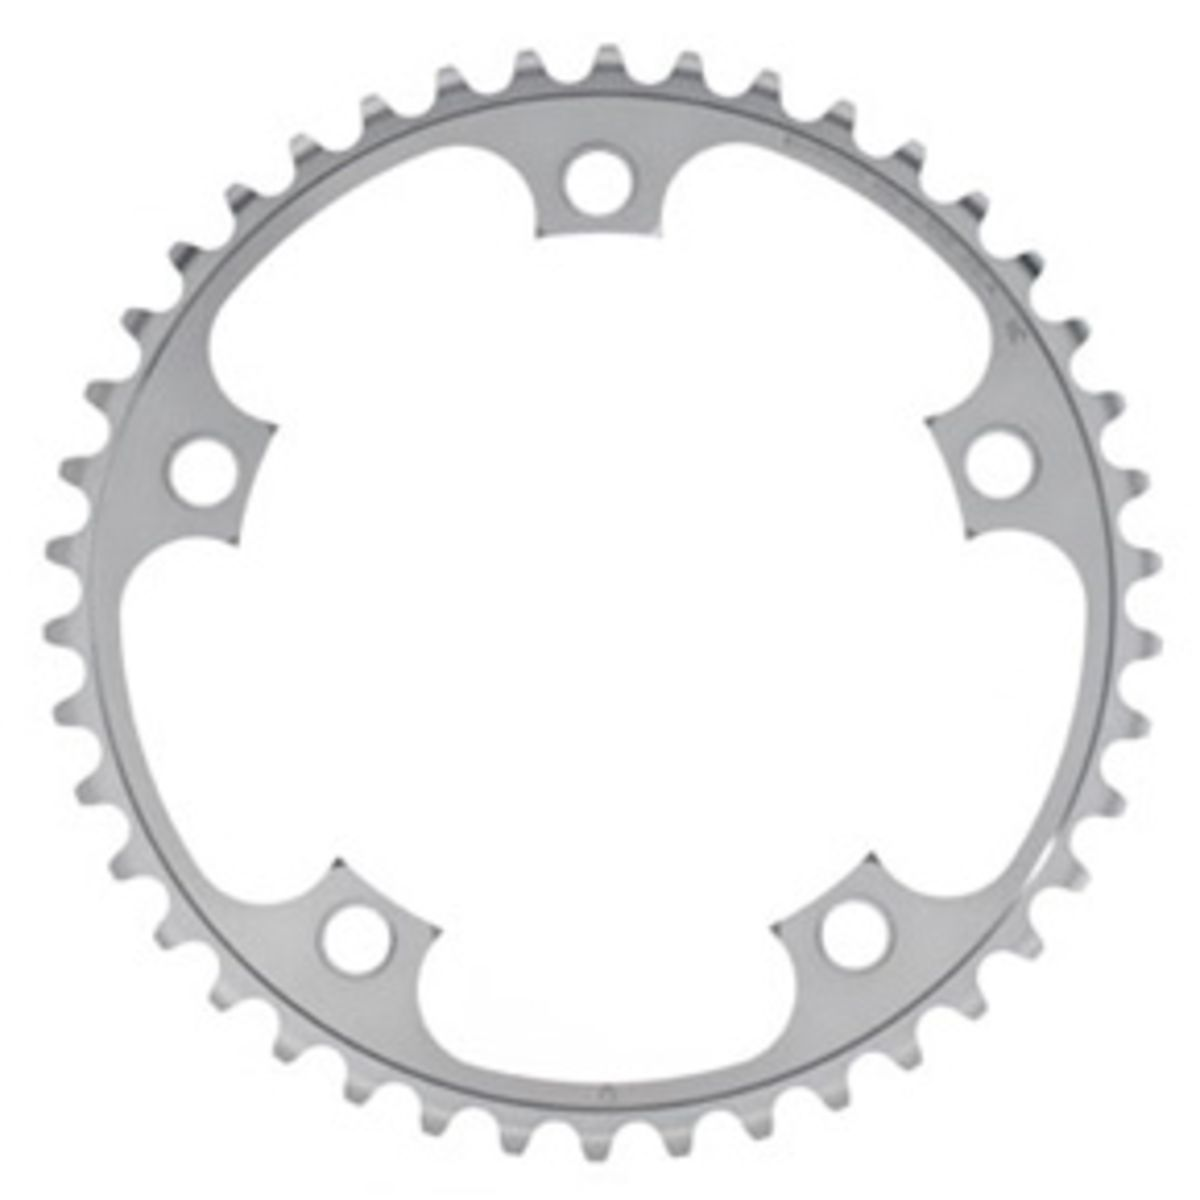 Dura Ace FC-7800 chainring